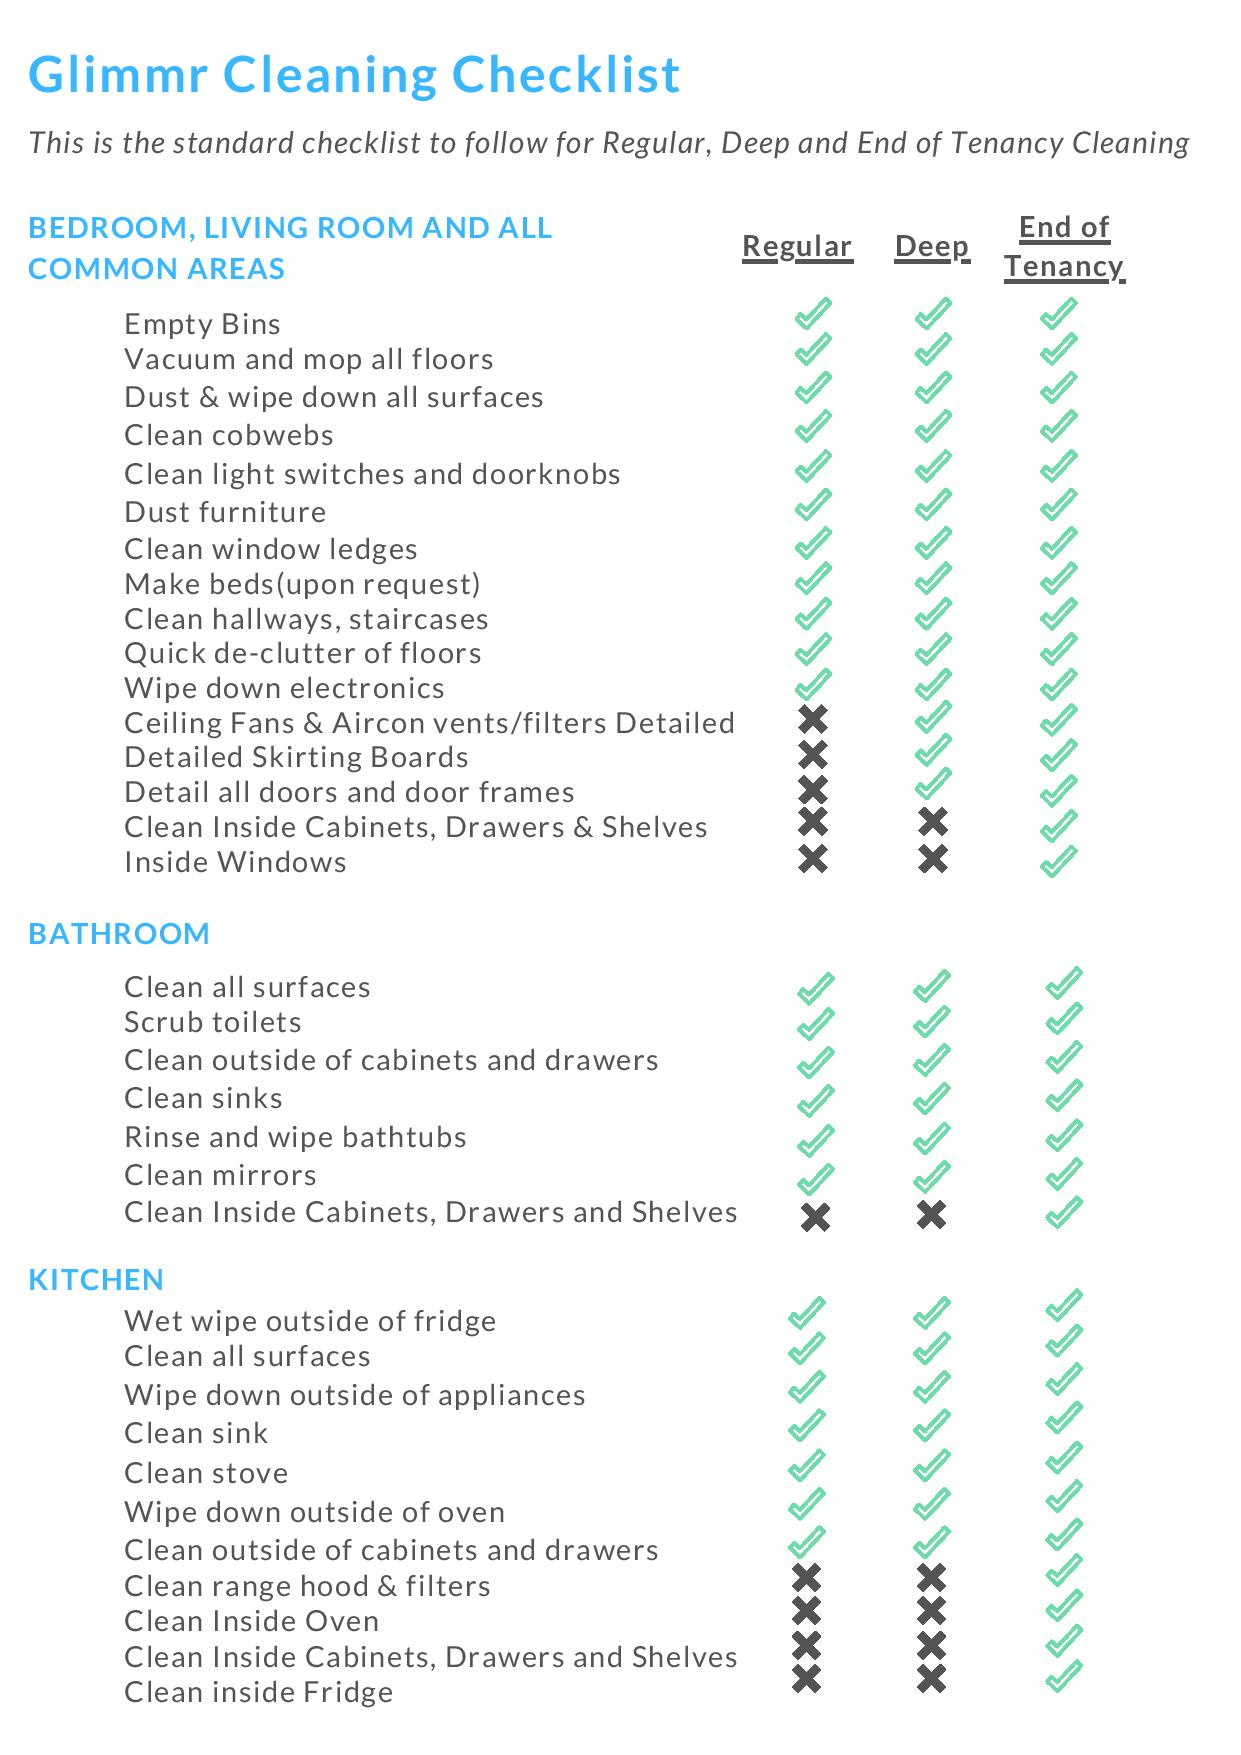 Glimmr Cleaning Checklist